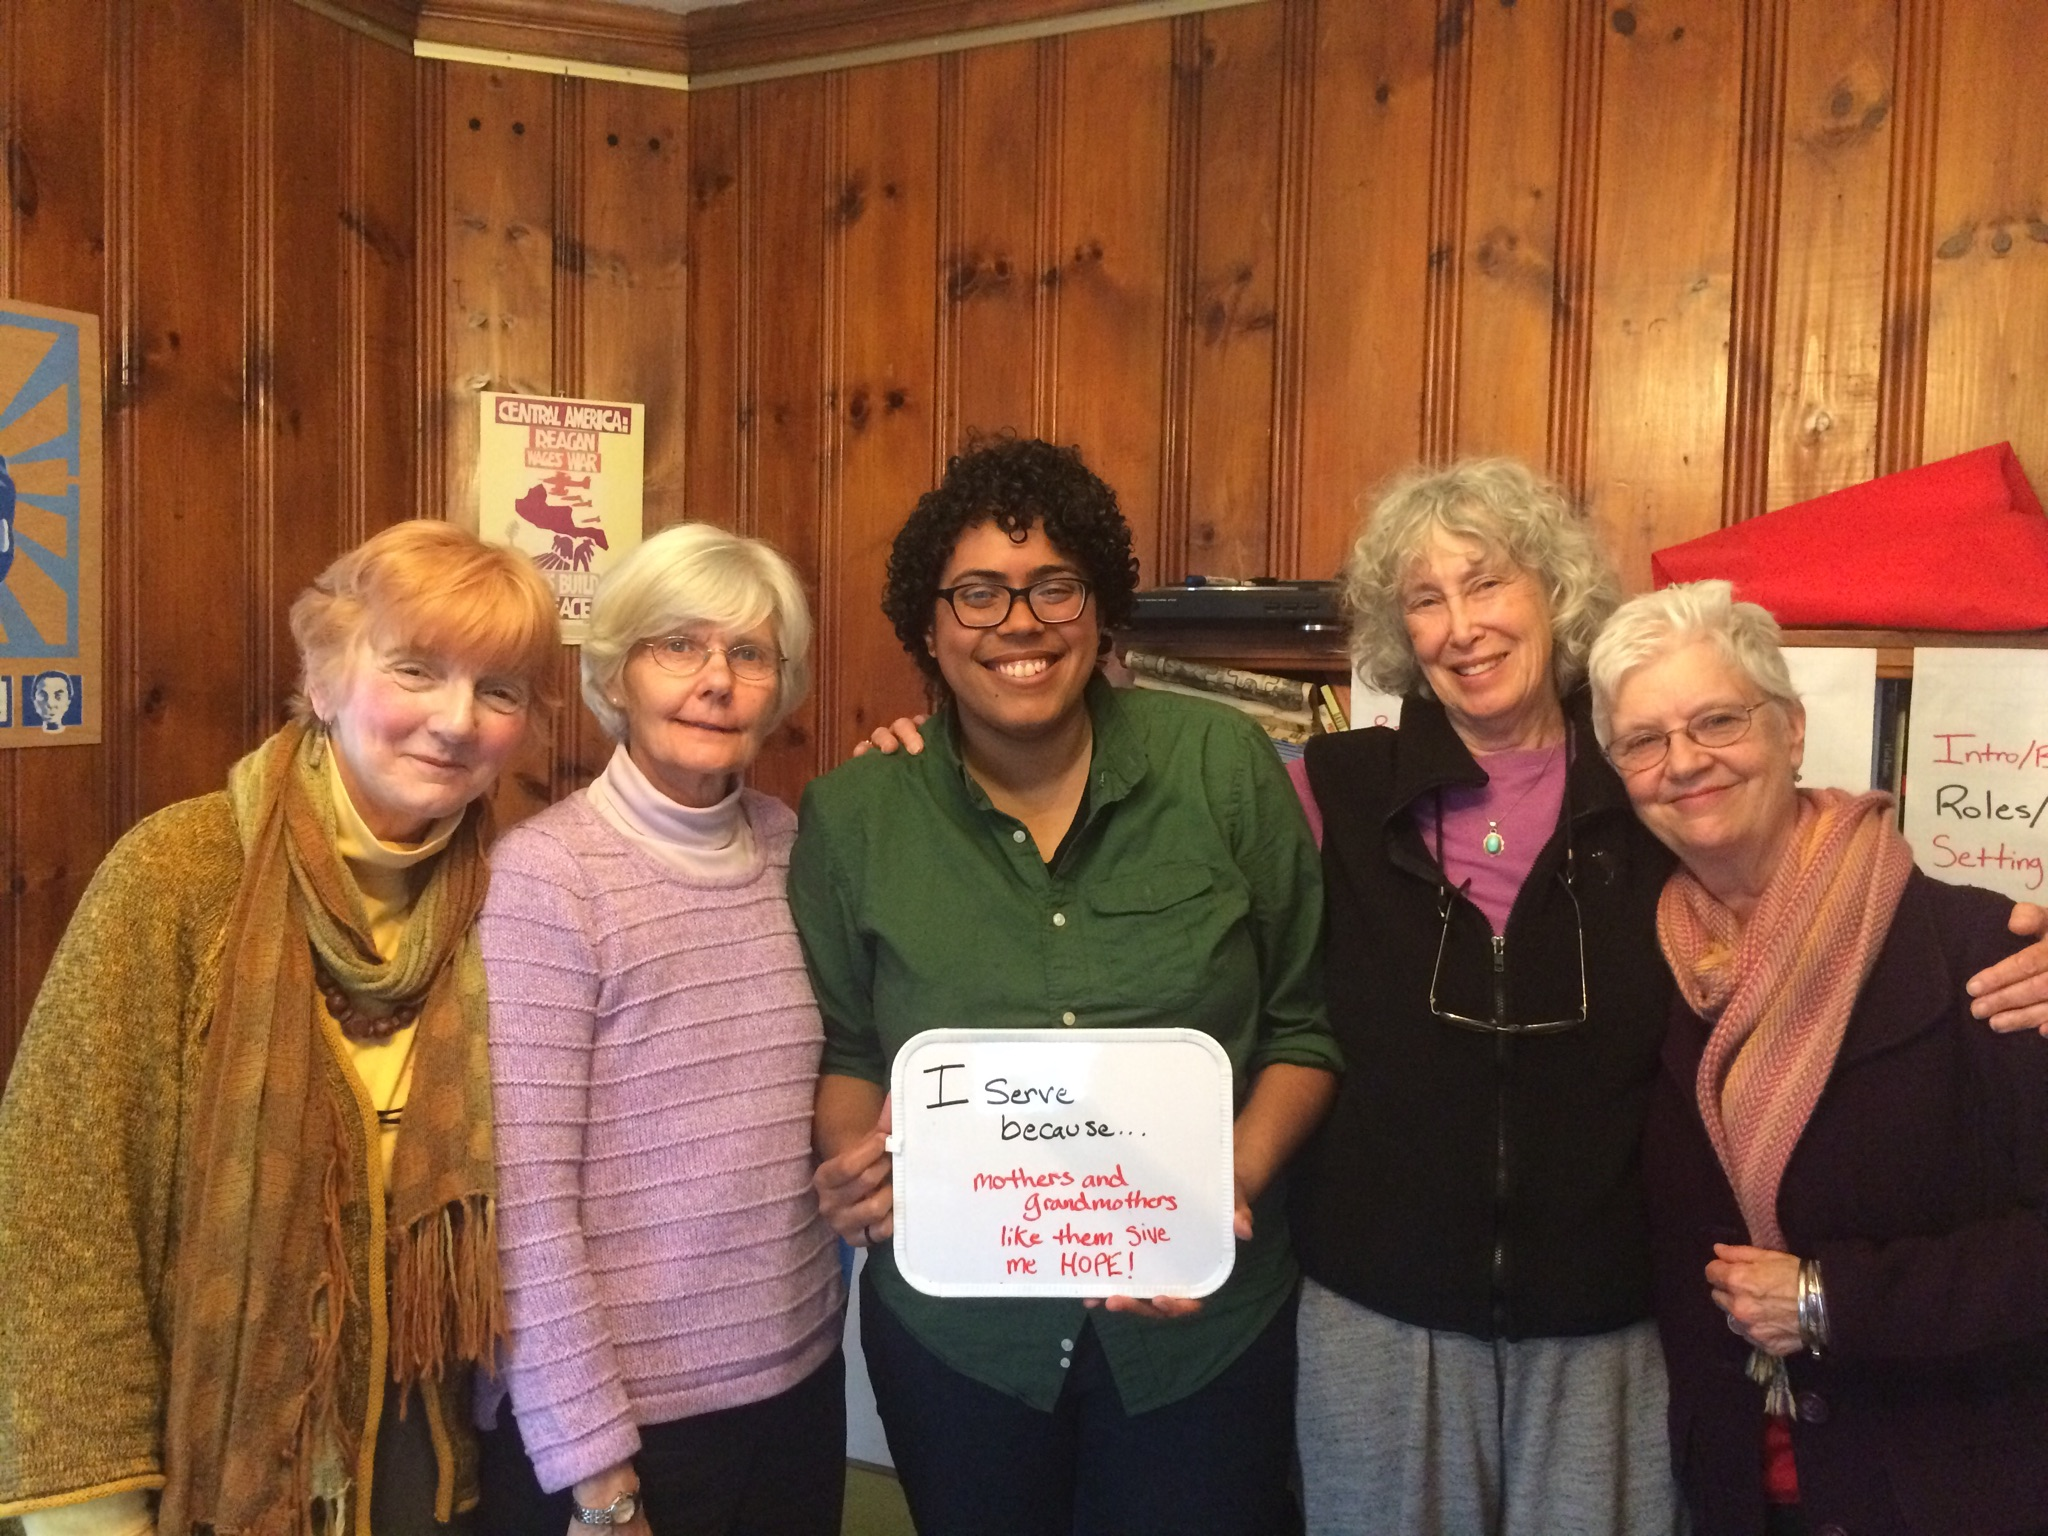 """""""I serve because mothers and grandmothers like them give me HOPE!"""" - Yani Burgos, Emmaus Fellow at Mothers Out Front & Allston Intentional Community"""